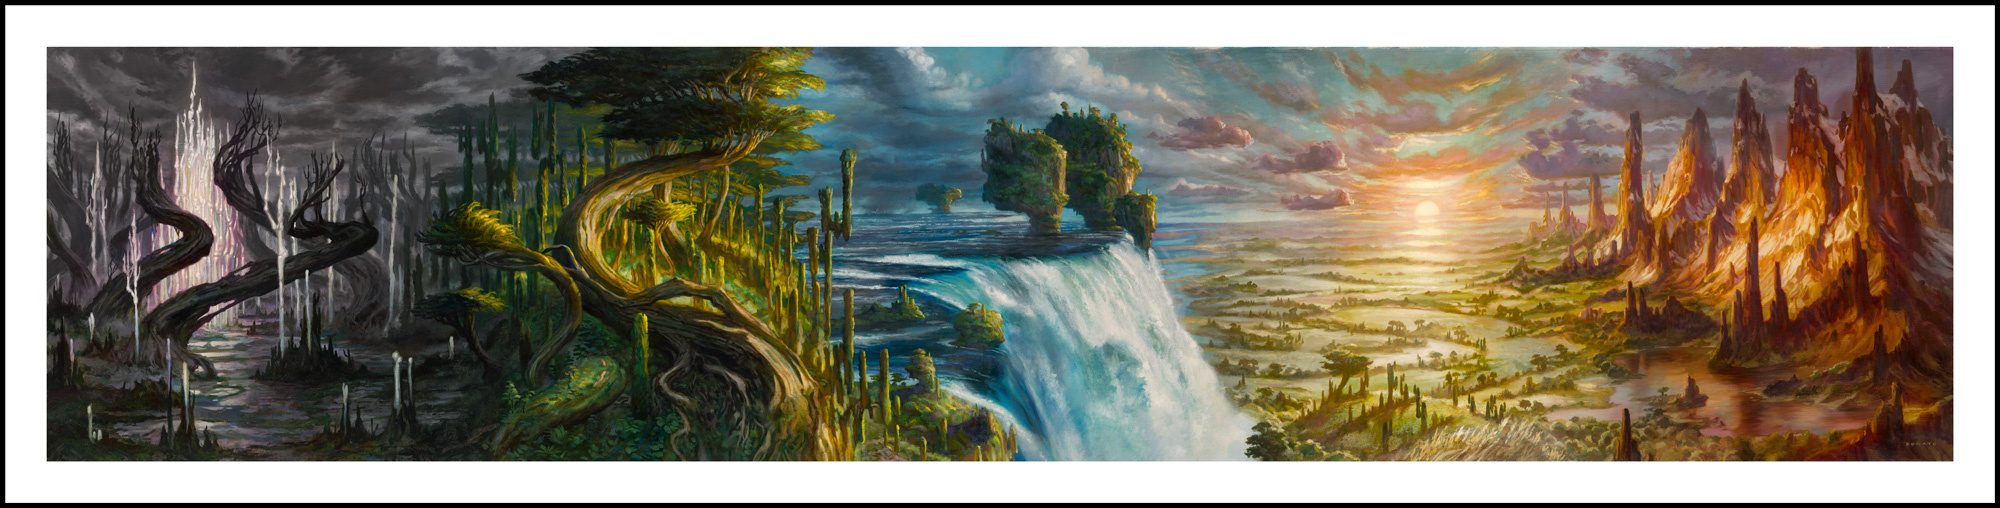 "Magic Five Lands Grand Prix Promo Cards 2018 20"" x 83""  Oil on Linen private collection"